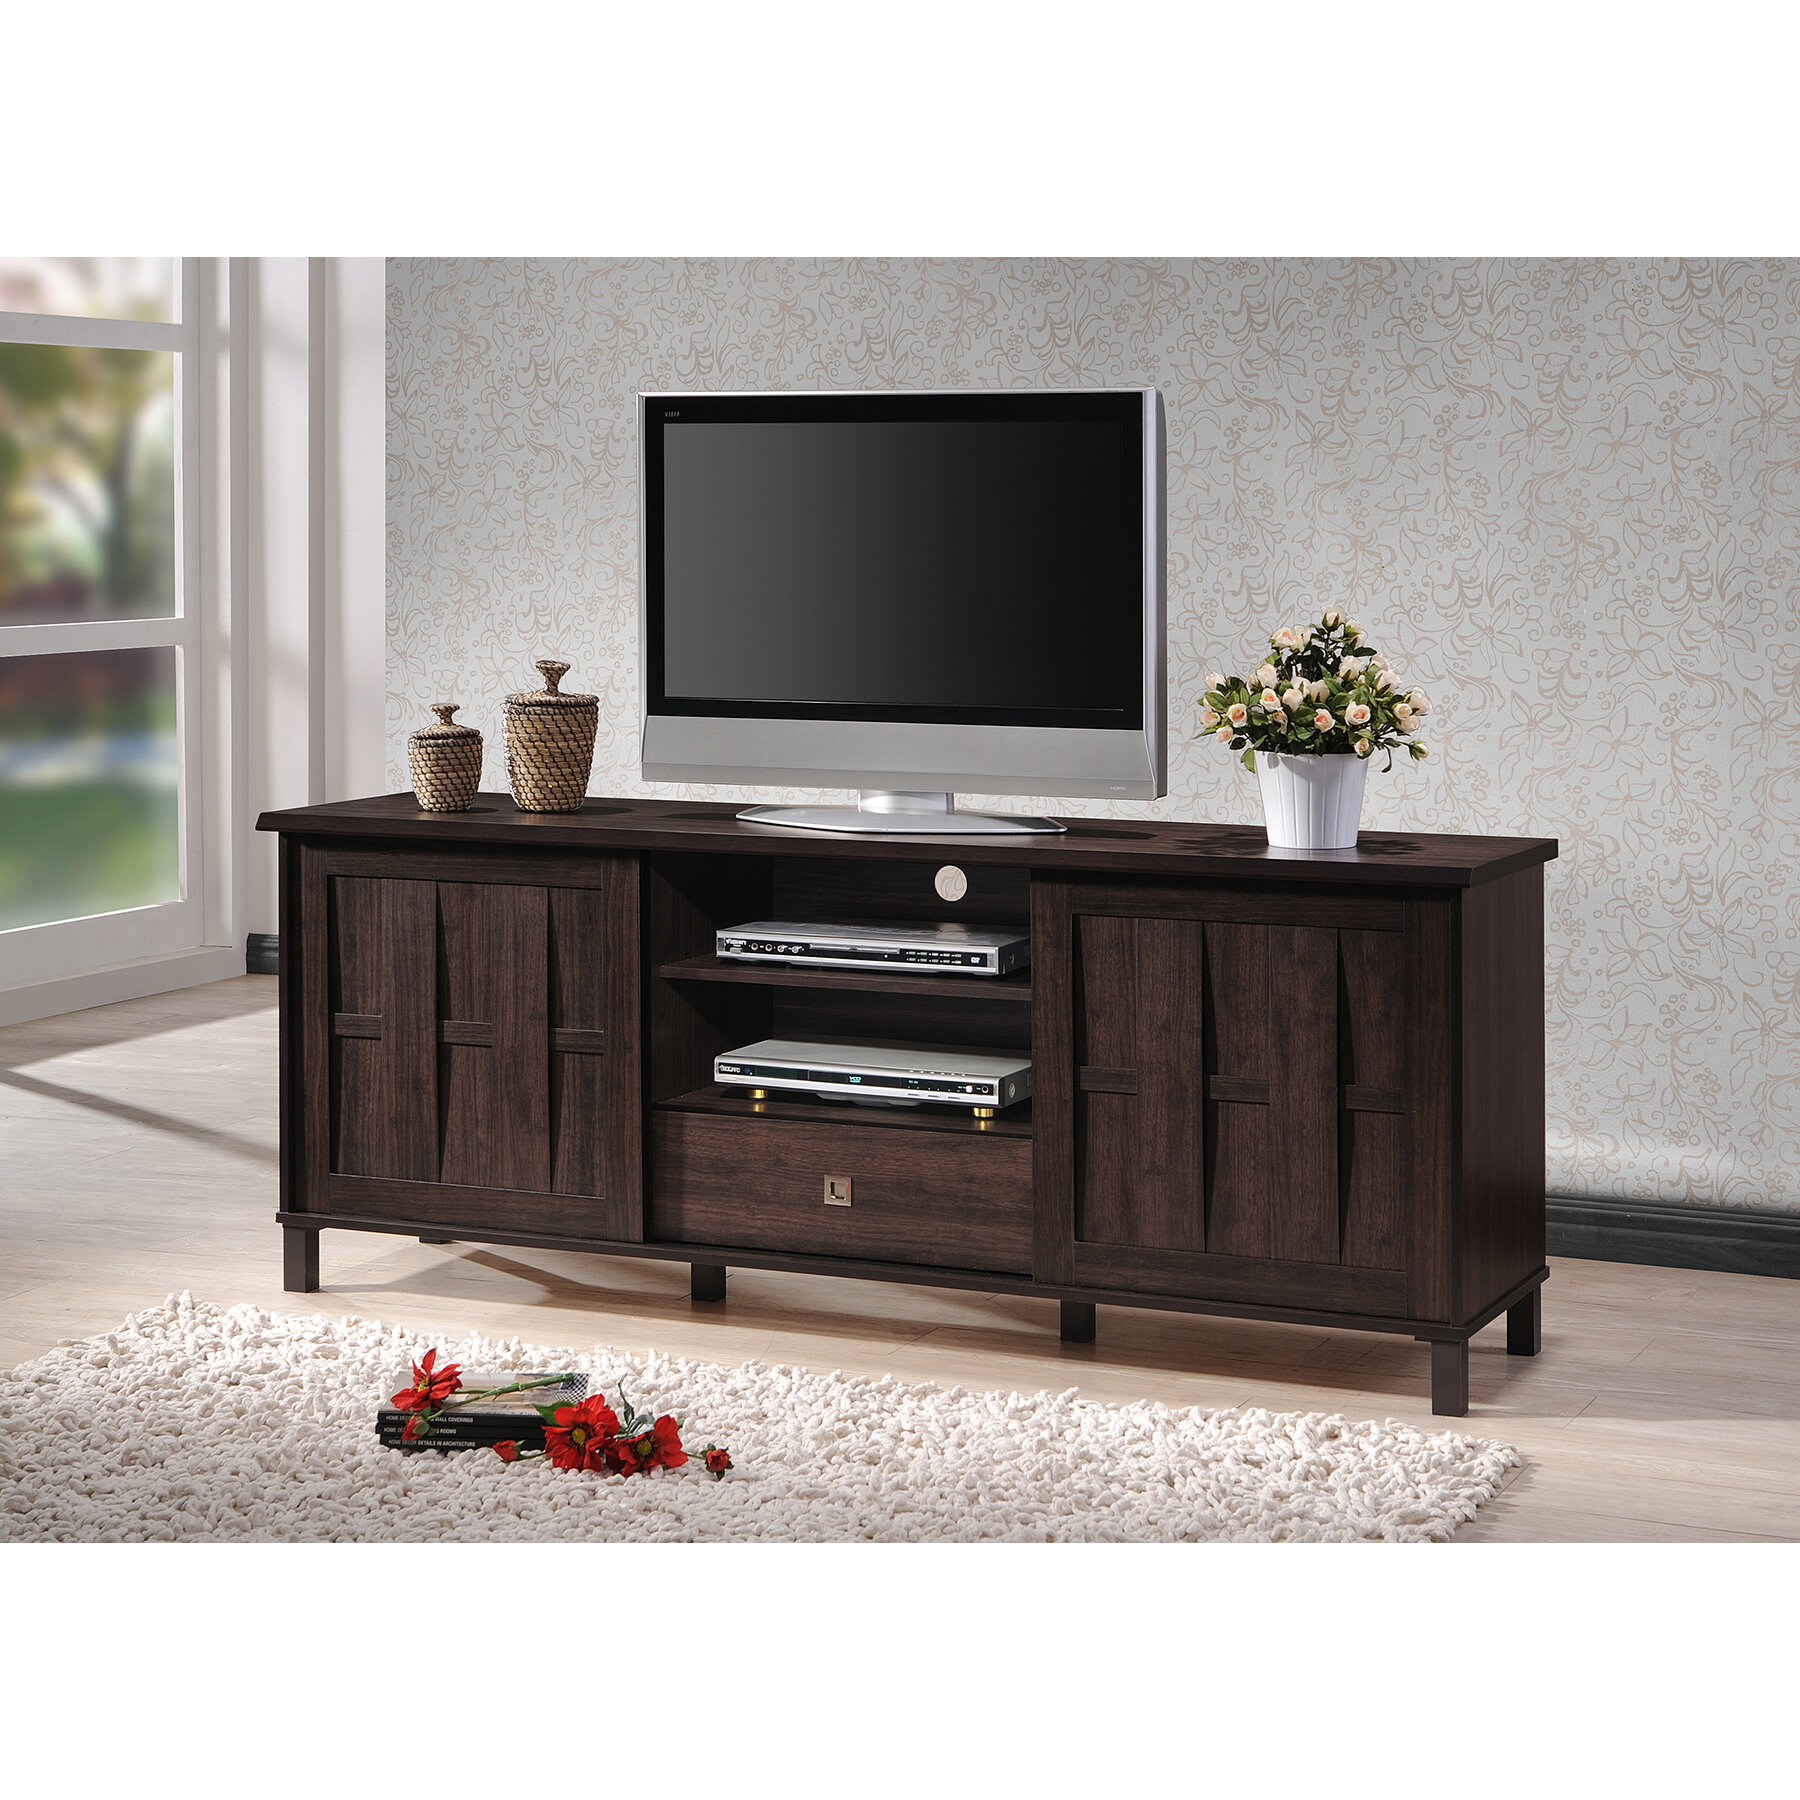 Whole Interiors Baxton Studio Tv Stand For Tvs Up To 78 Reviews Wayfair